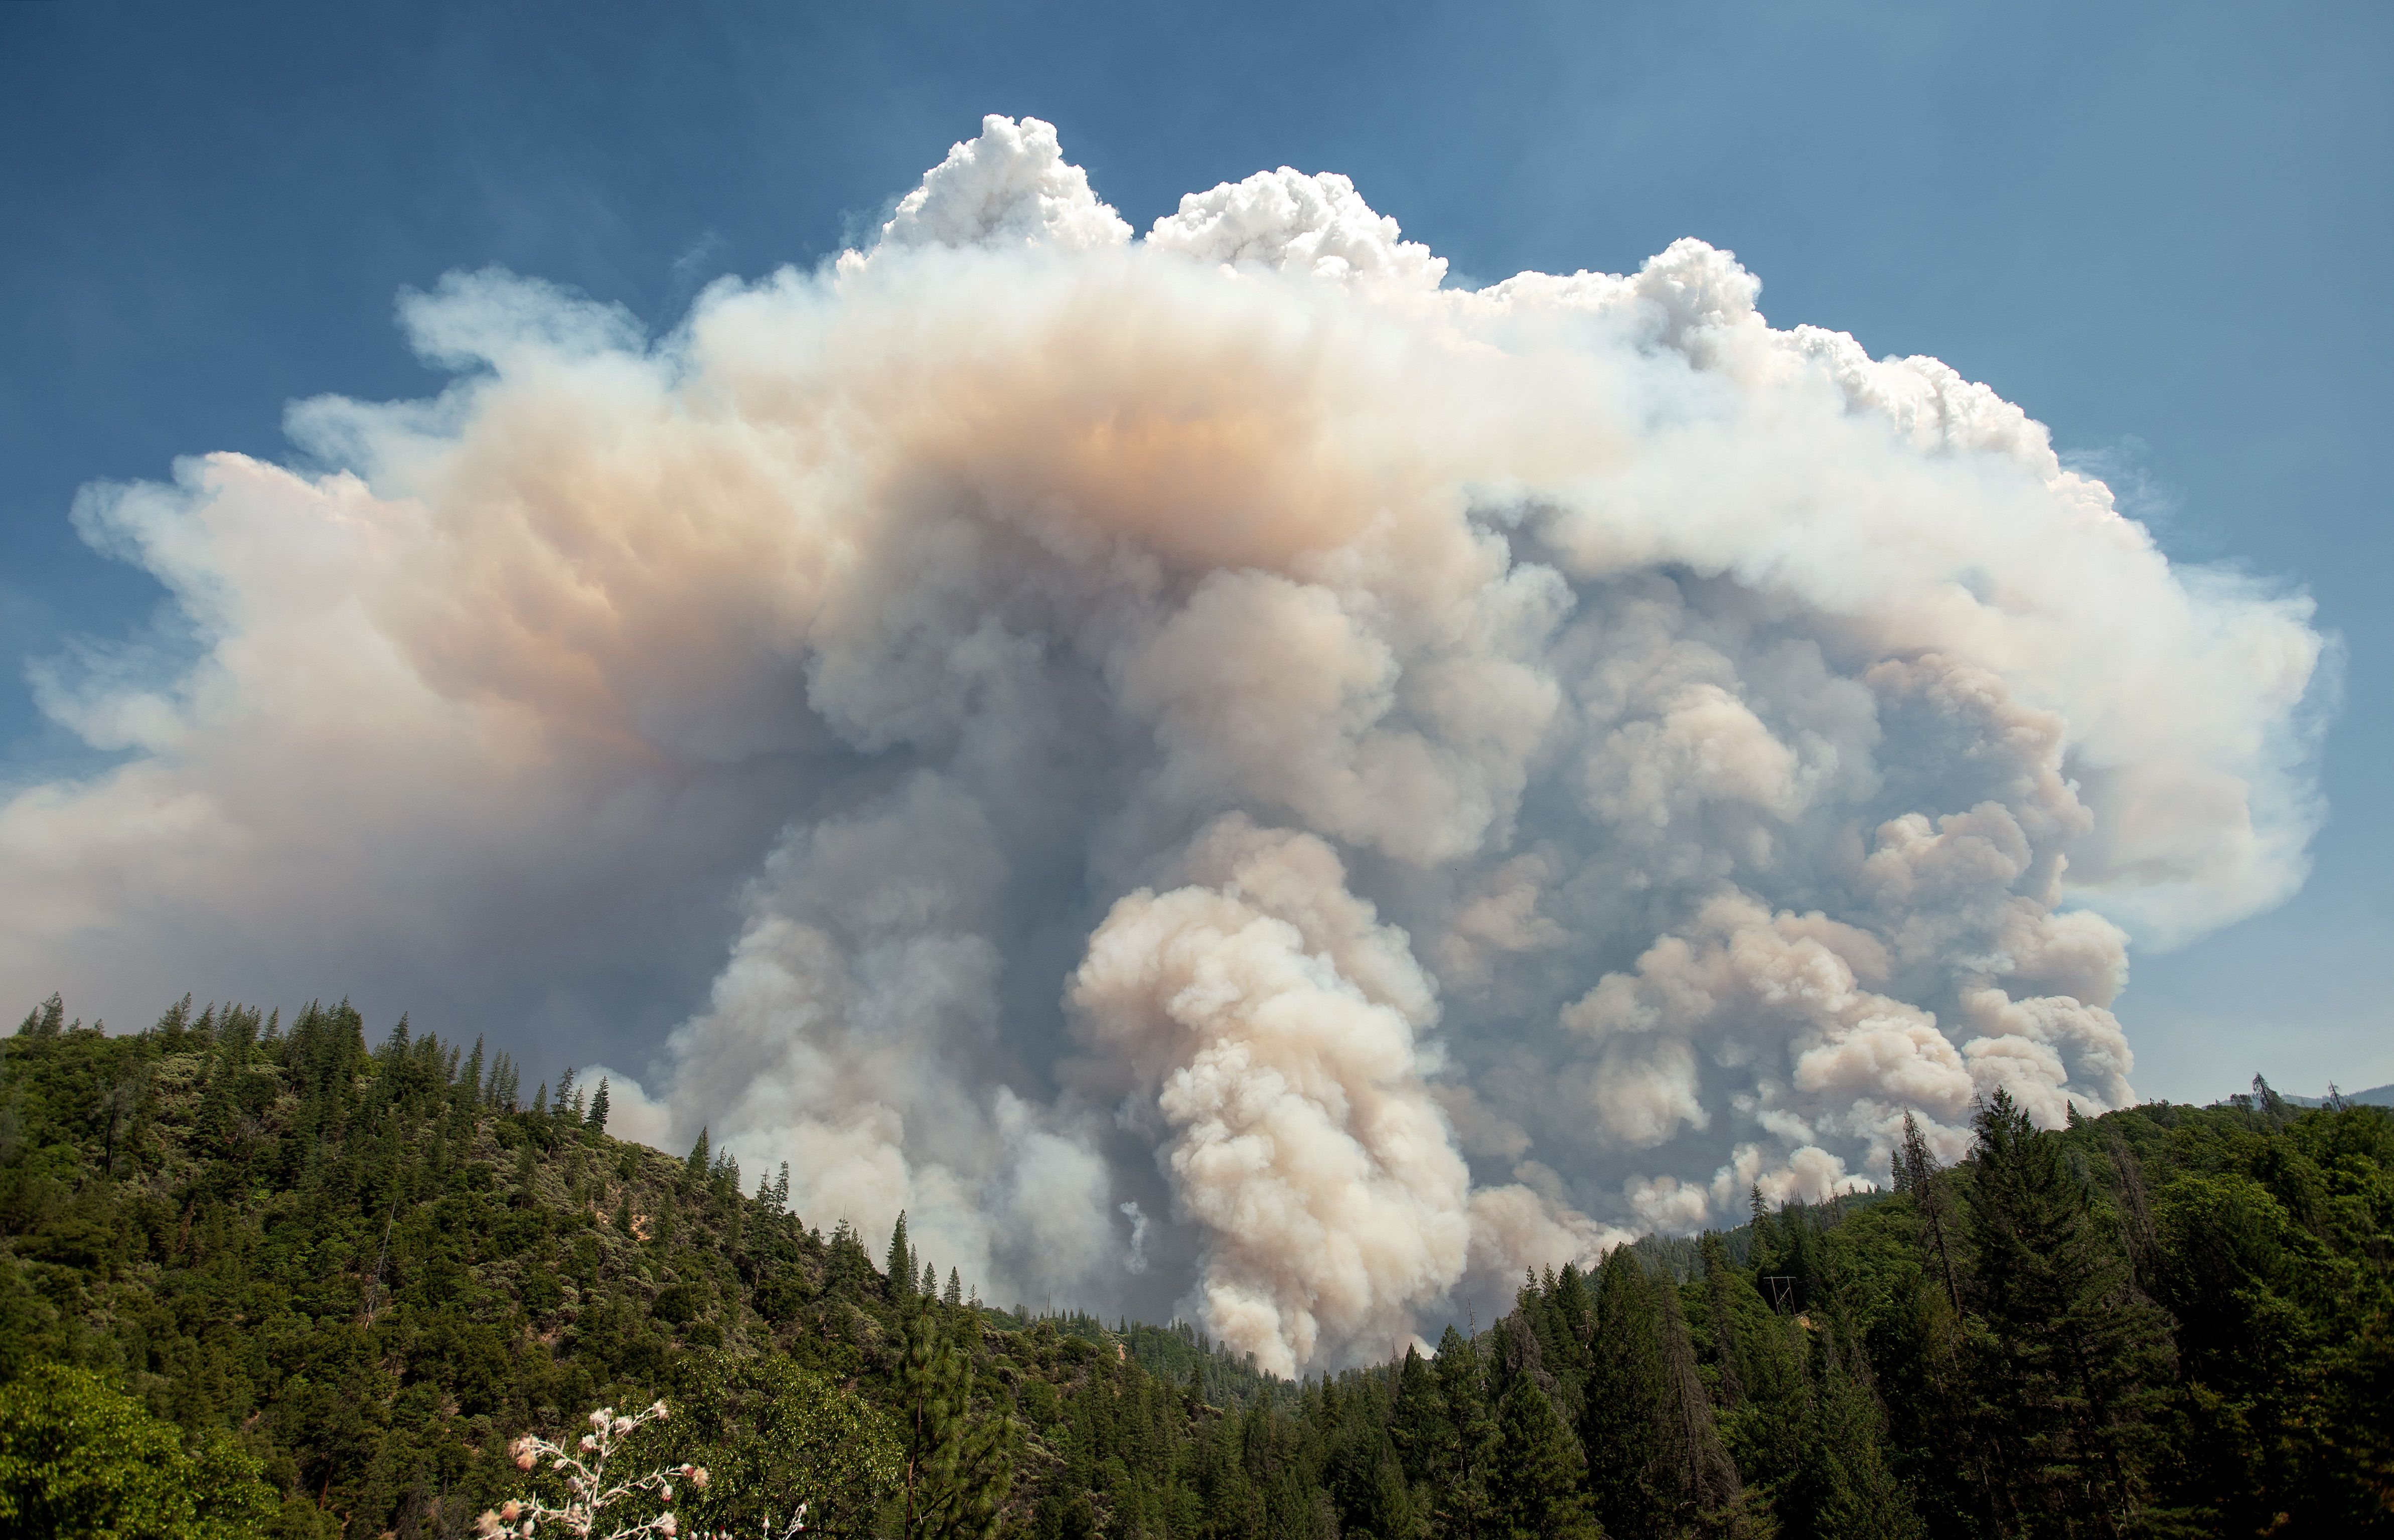 A large pyrocumulus cloud explodes outward during the Carr Fire near Redding, California, on July 27.